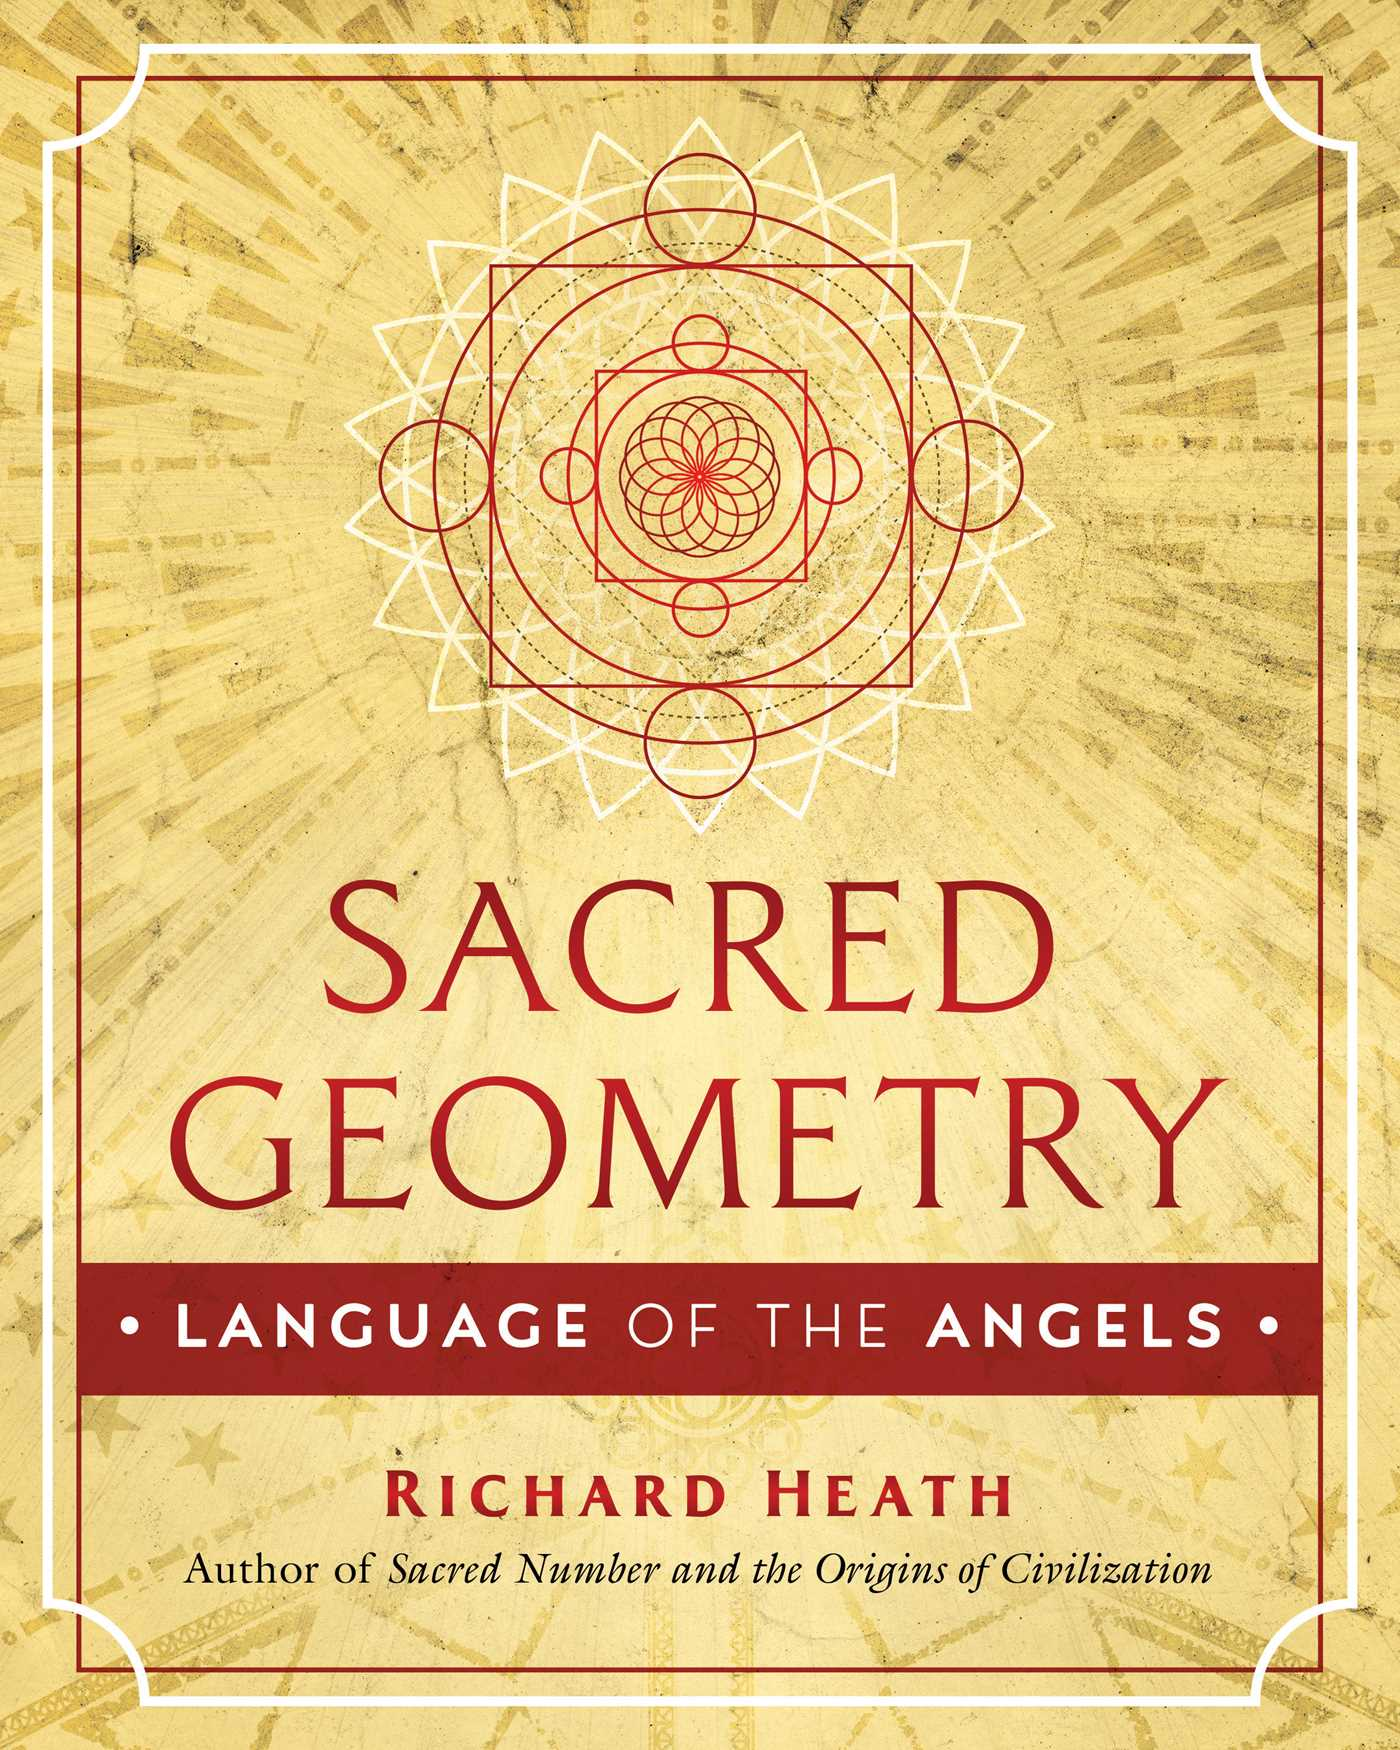 Sacred Geometry: Language of the Angels | Book by Richard Heath | Official  Publisher Page | Simon & Schuster UK